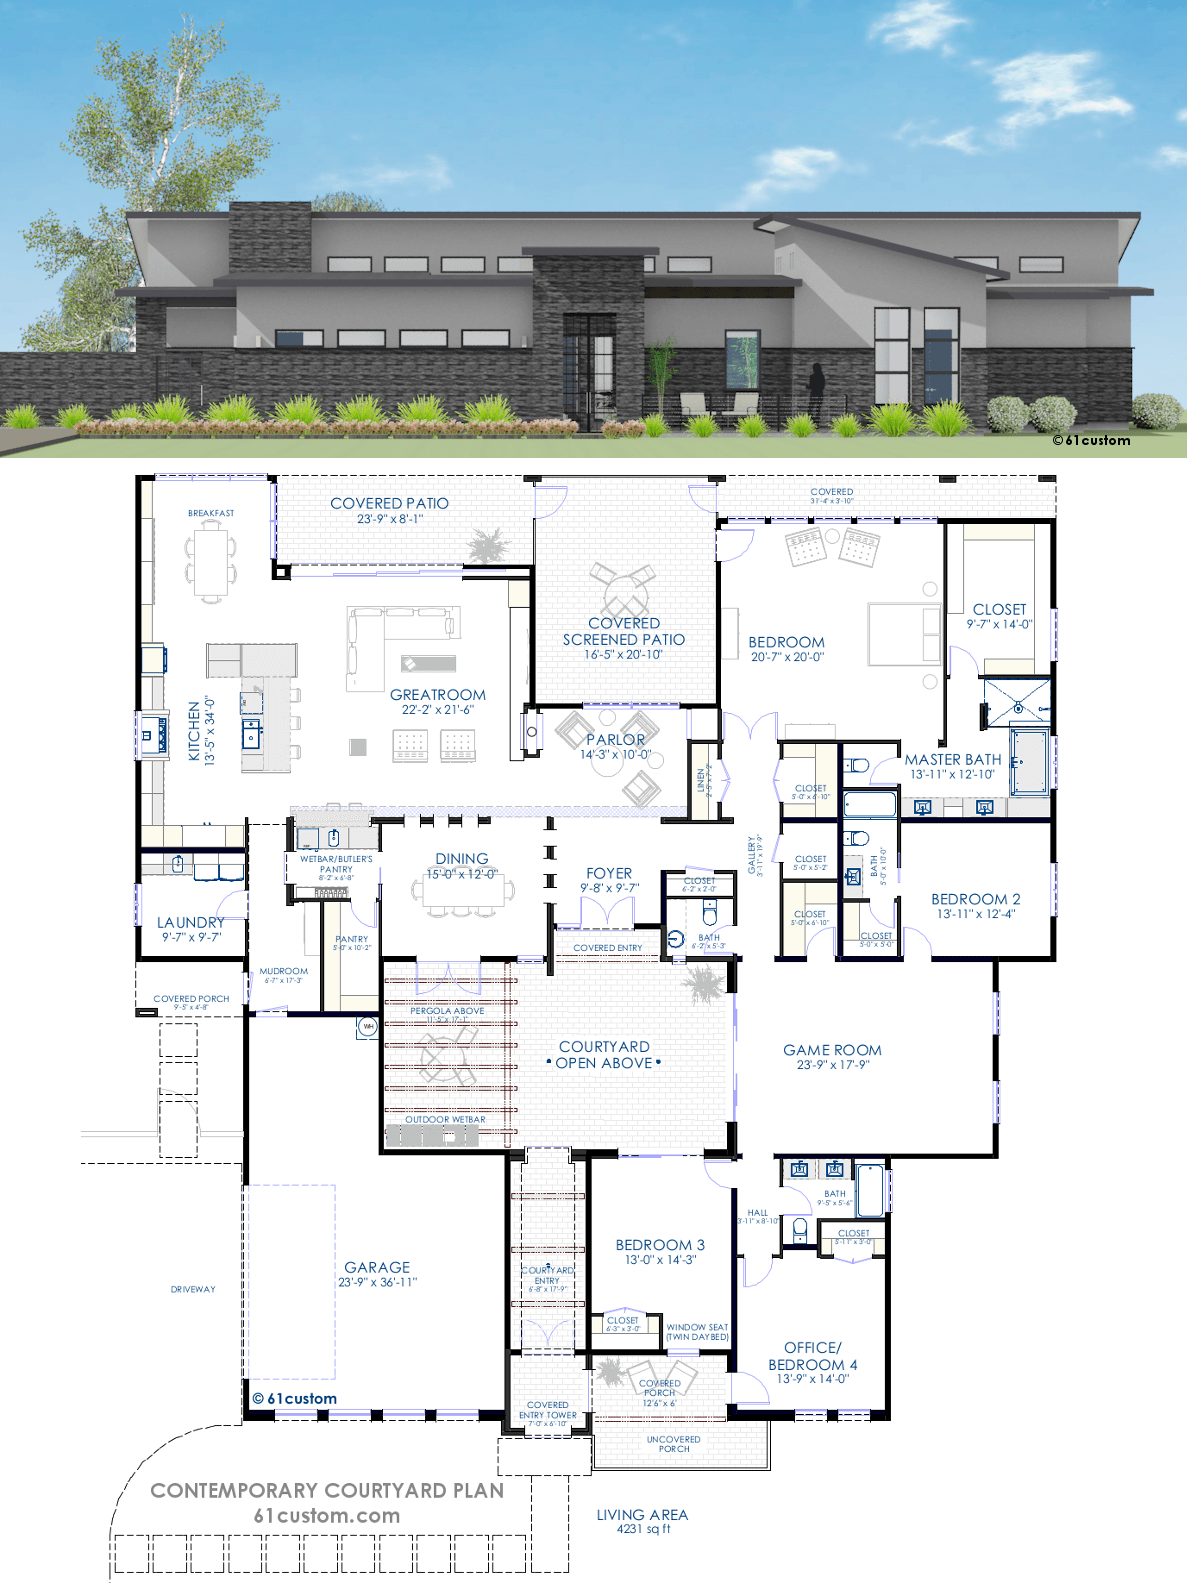 Contemporary courtyard house plan 61custom modern house plans for Small modern house designs and floor plans